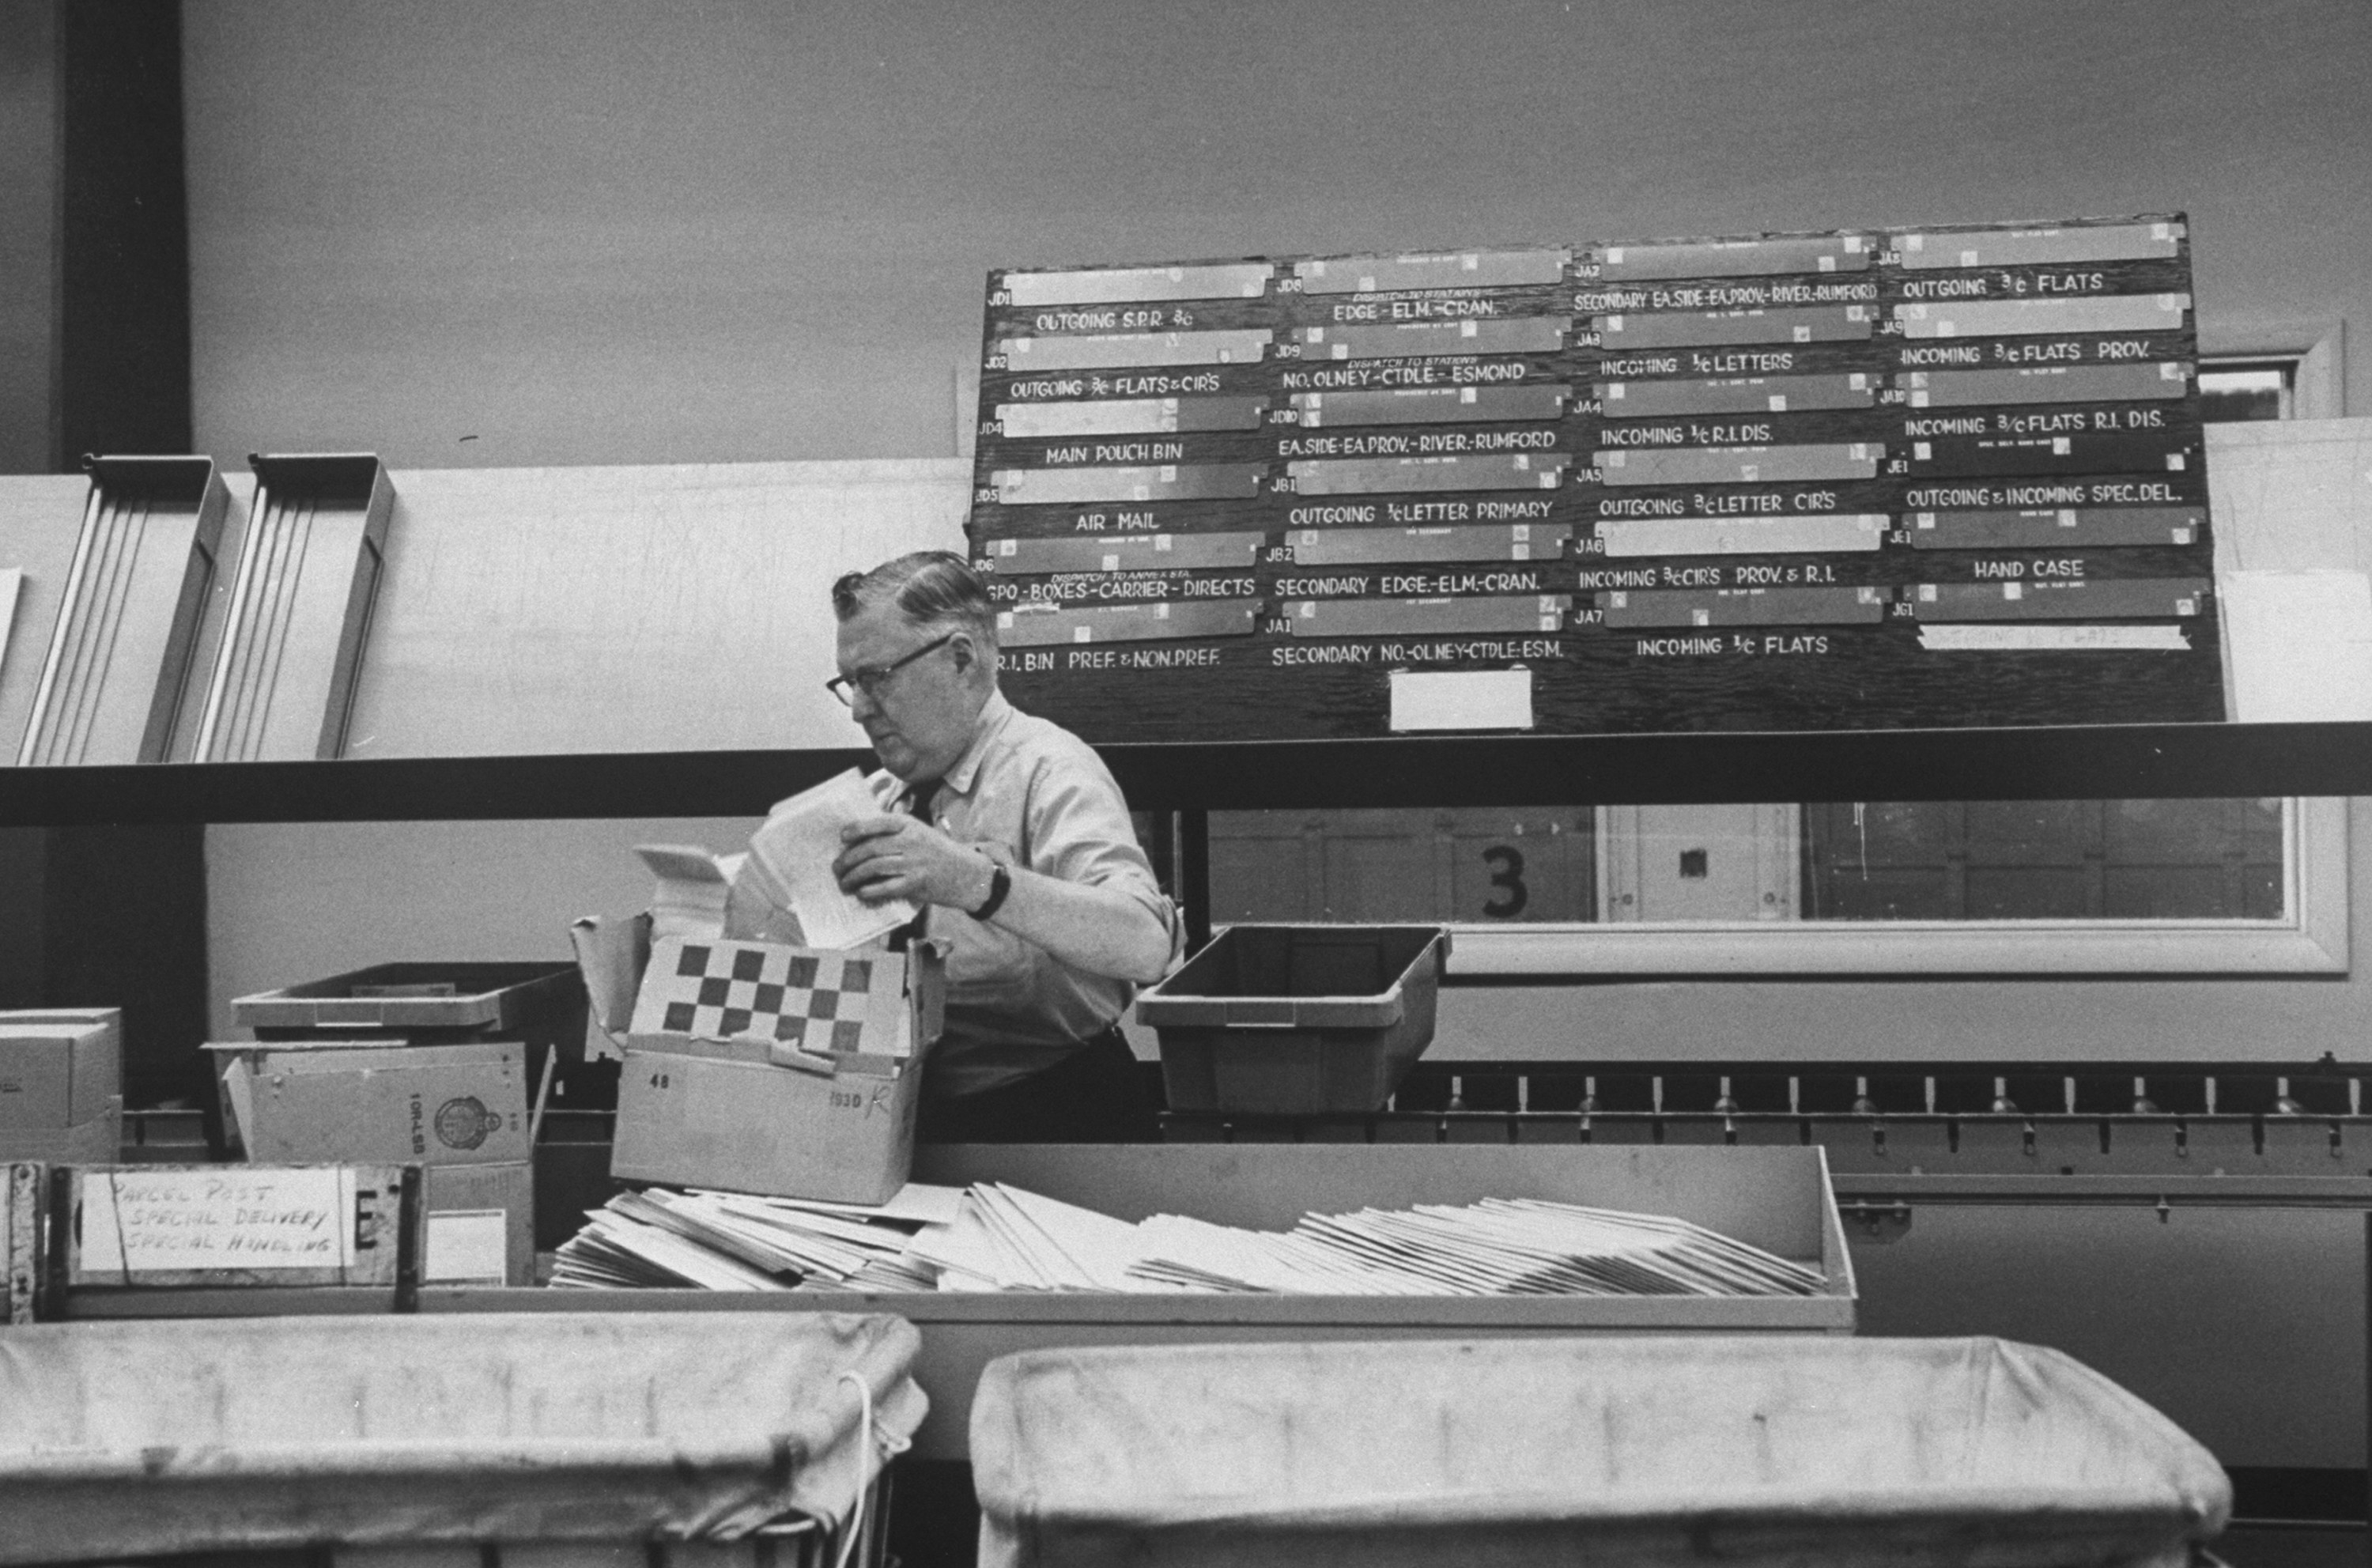 A middle-aged white man in glasses unloads mail onto a conveyer belt